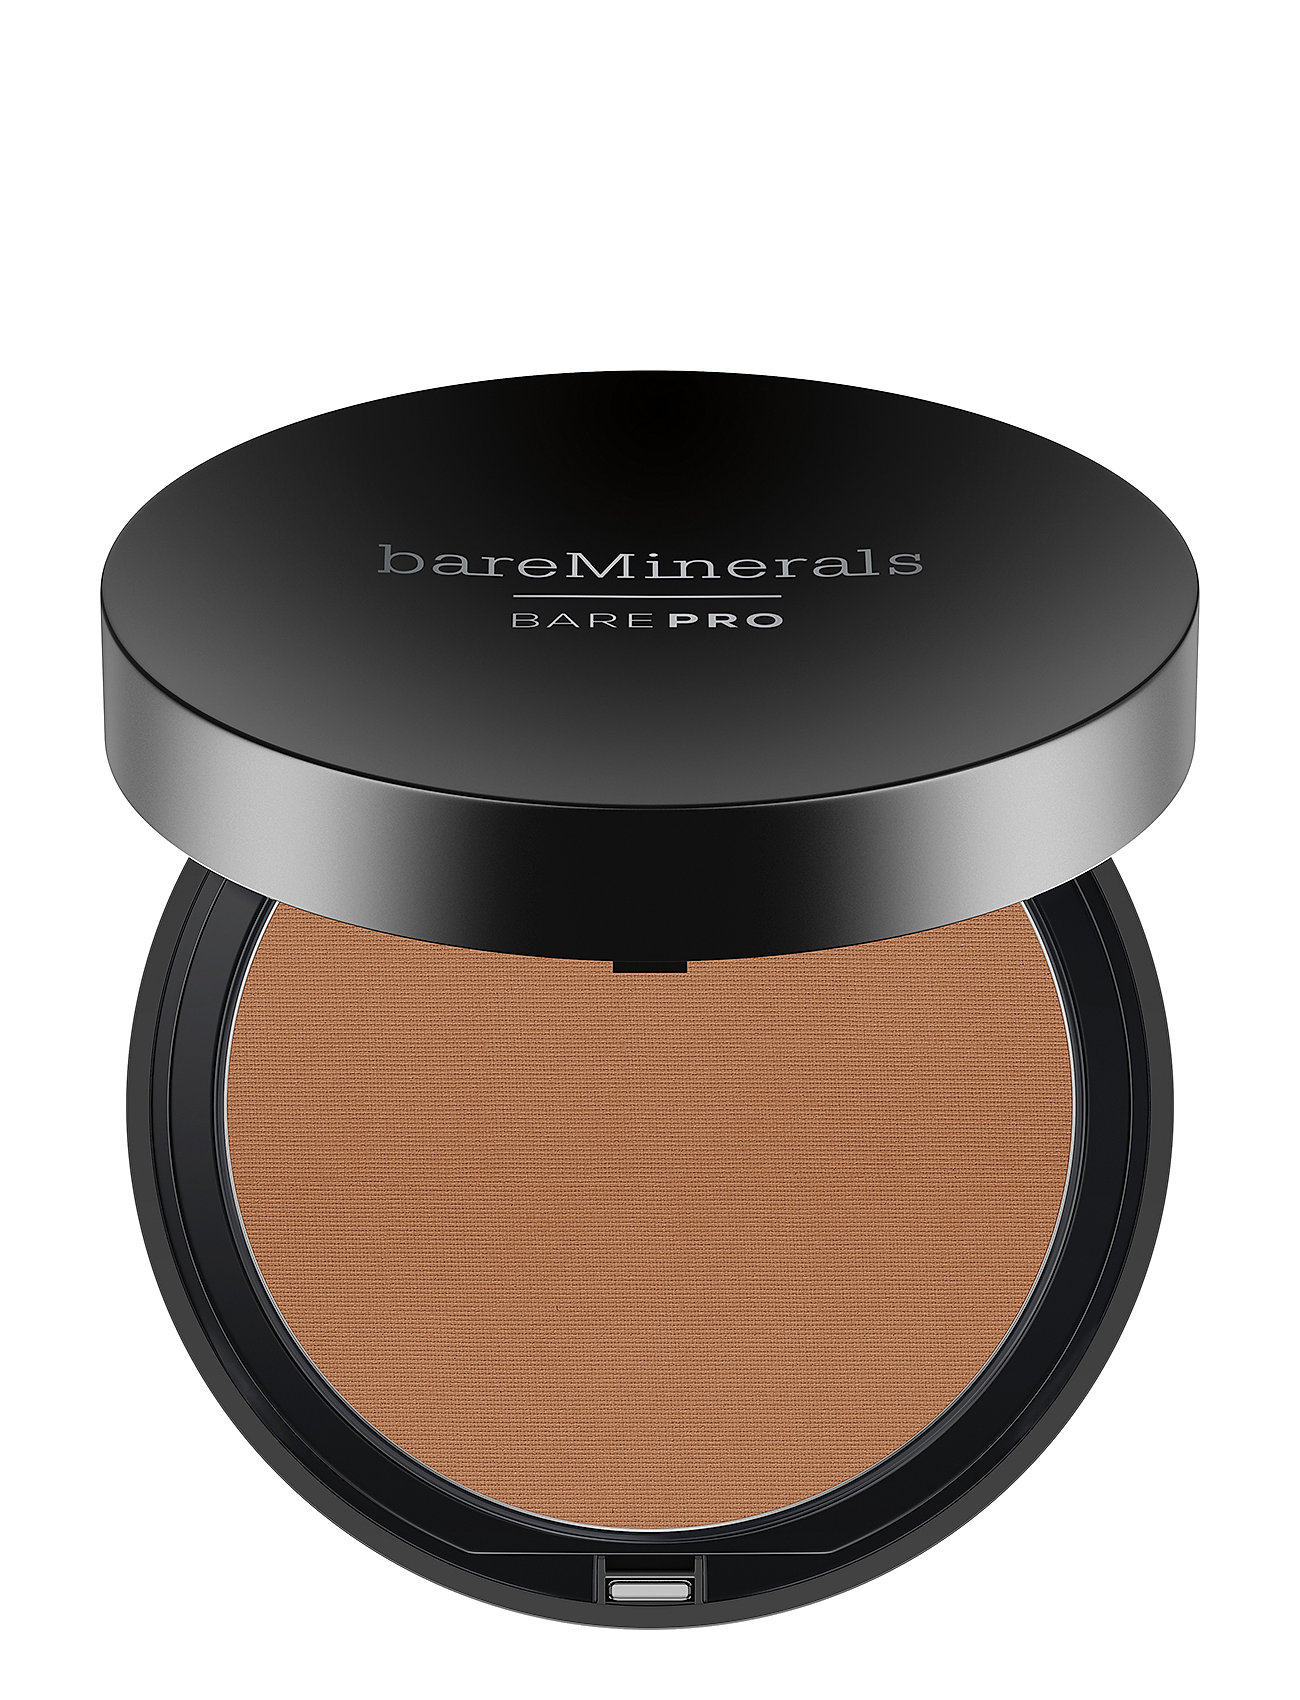 Image of Barepro Performance Wear Powder Foundation Foundation Makeup BareMinerals (3251433719)